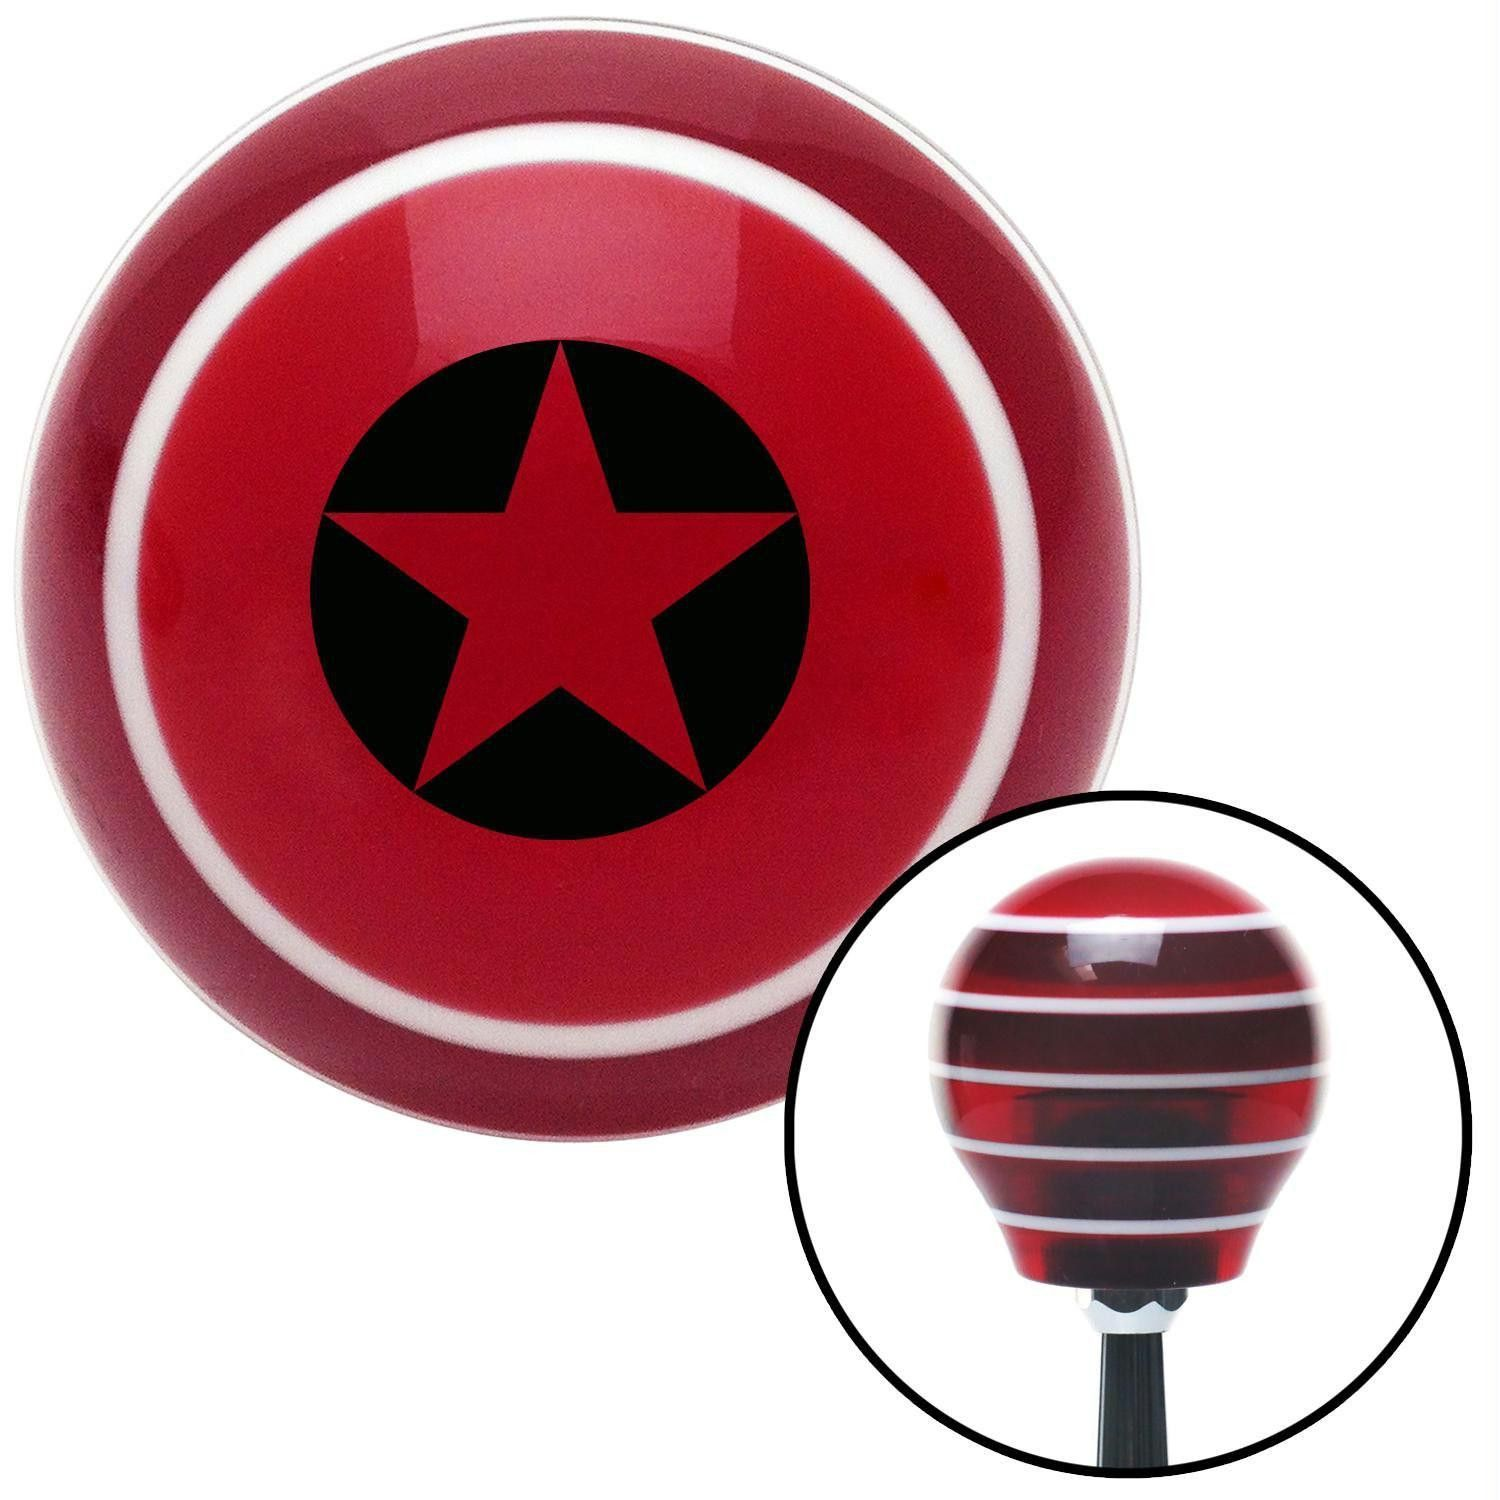 Black Star in Circle Outline Red Stripe Shift Knob with M16 x 15 Insert